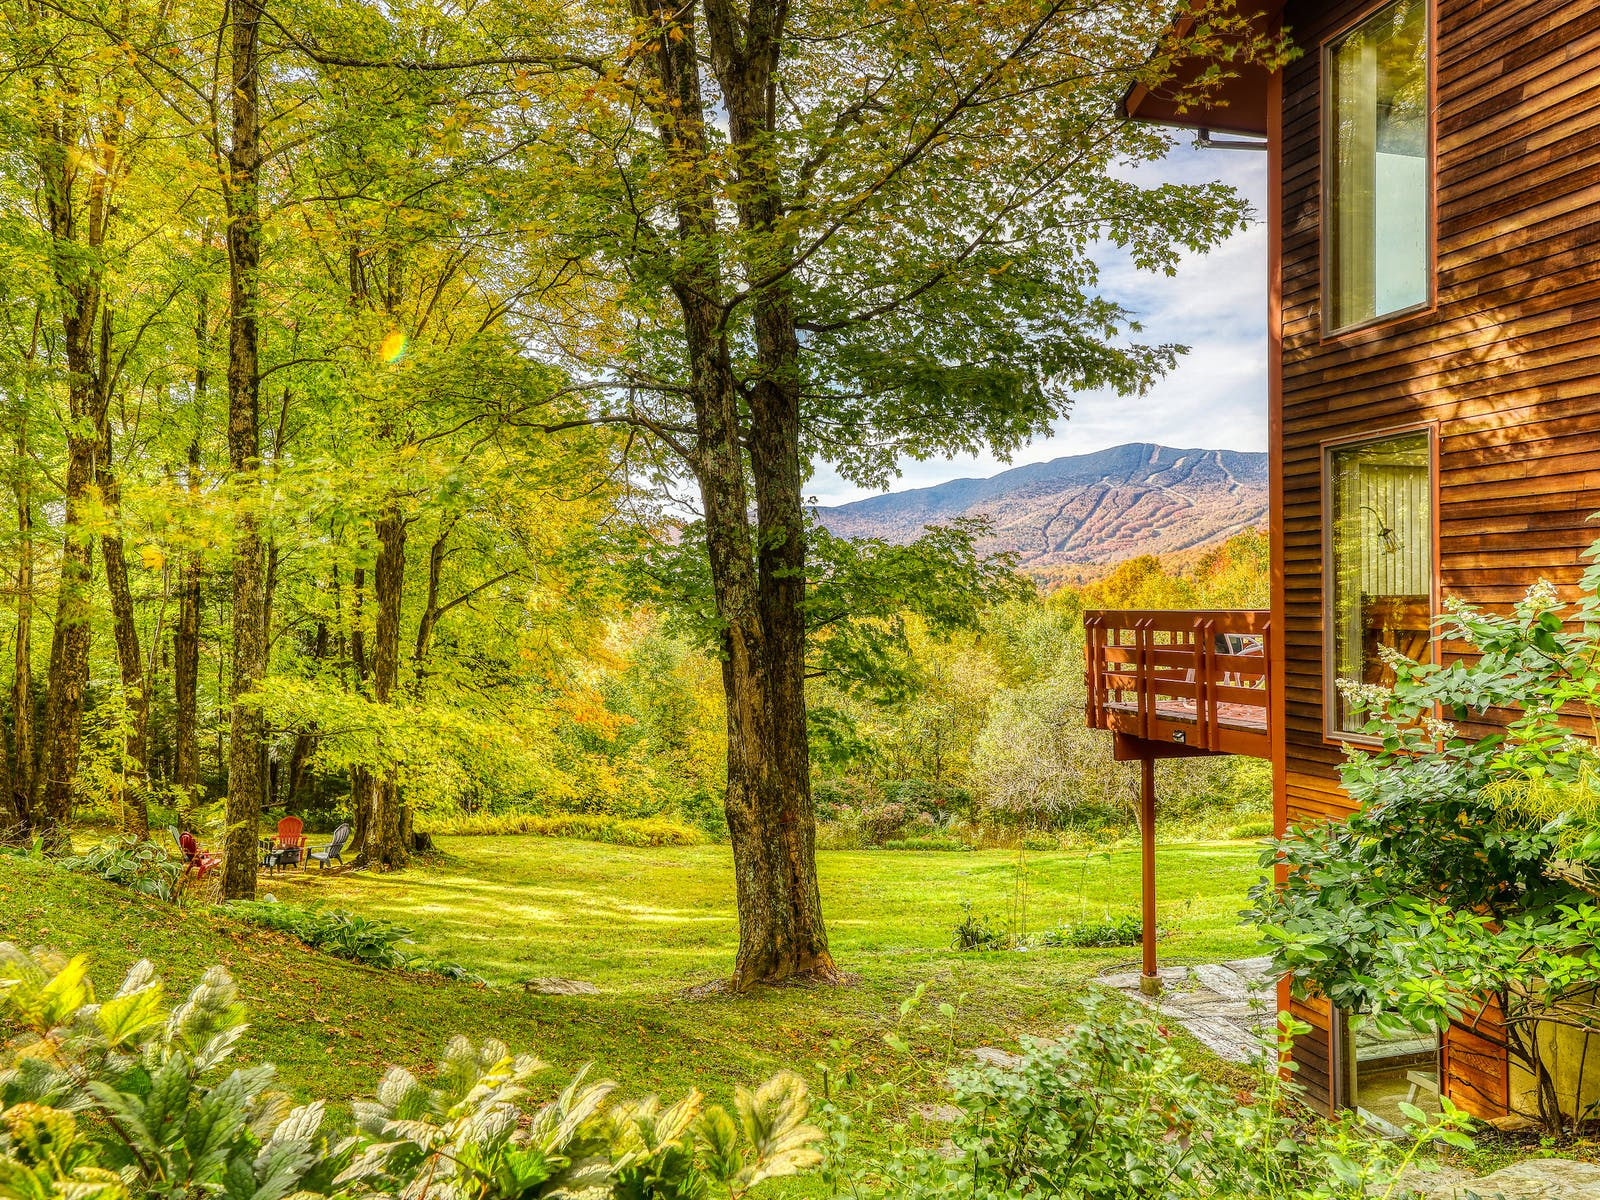 a cabin in Vermont in the fall